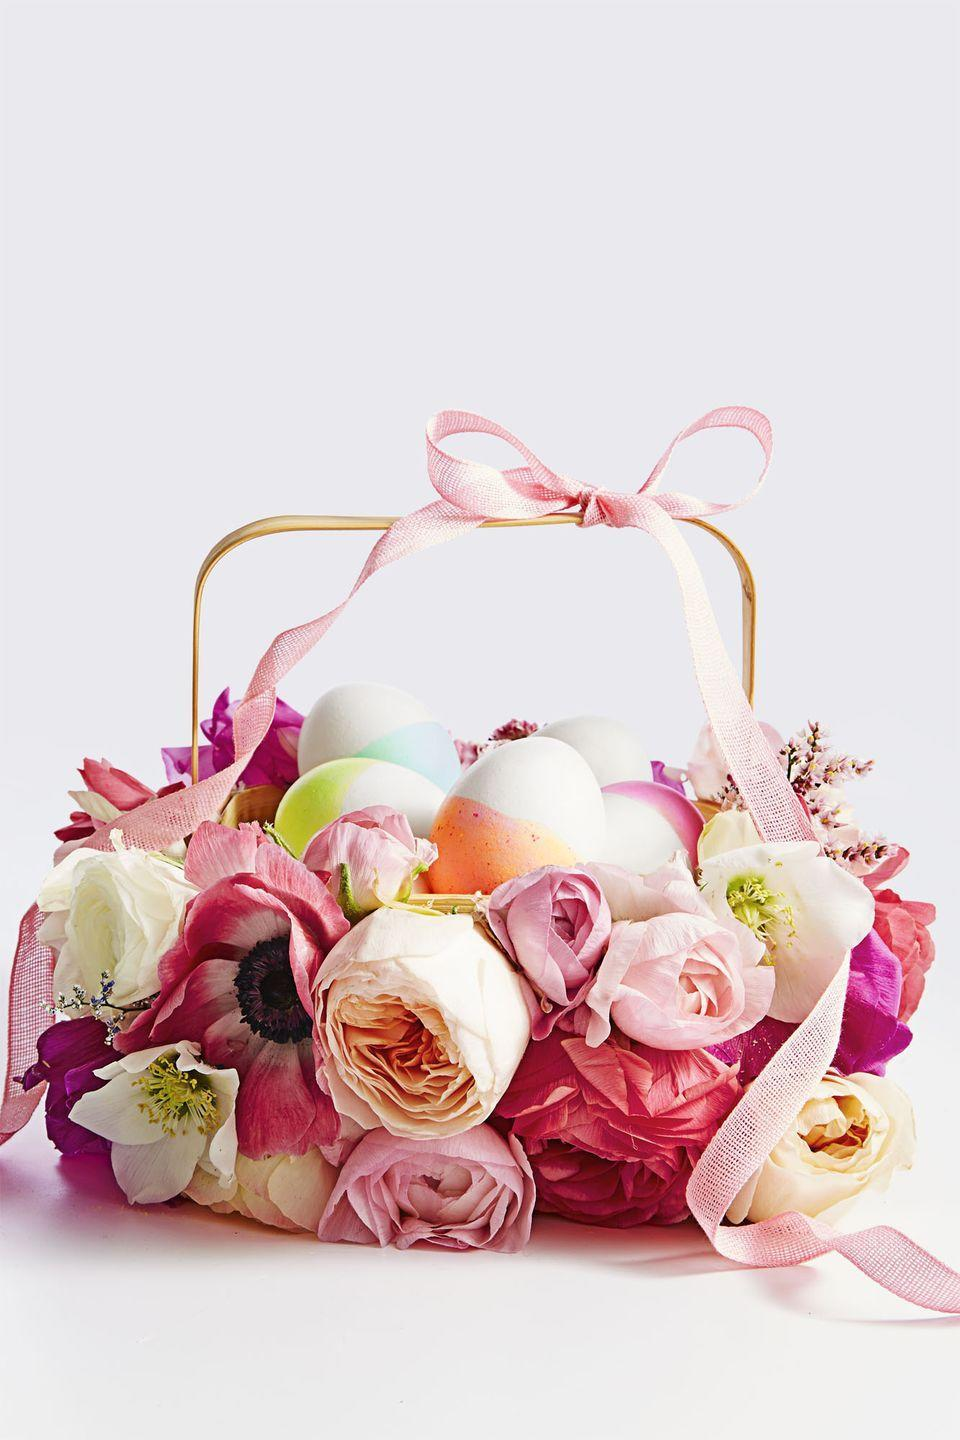 """<p>First, use this basket to collect sweets. Then, leave it out on the table as an eye-catching centerpiece. To make, simply glue a variety of faux blooms around the base of the basket and top it off with a bow. <br><br><a class=""""link rapid-noclick-resp"""" href=""""https://www.amazon.com/Luyue-Vintage-Artificial-Flowers-Decoration/dp/B01CVM5YKU/?tag=syn-yahoo-20&ascsubtag=%5Bartid%7C10055.g.480%5Bsrc%7Cyahoo-us"""" rel=""""nofollow noopener"""" target=""""_blank"""" data-ylk=""""slk:SHOP FAKE FLOWERS"""">SHOP FAKE FLOWERS</a></p><p><strong>RELATED: </strong><a href=""""https://www.goodhousekeeping.com/holidays/easter-ideas/g1906/easter-flowers/"""" rel=""""nofollow noopener"""" target=""""_blank"""" data-ylk=""""slk:Gorgeous Easter Flowers and Centerpieces"""" class=""""link rapid-noclick-resp"""">Gorgeous Easter Flowers and Centerpieces </a></p>"""